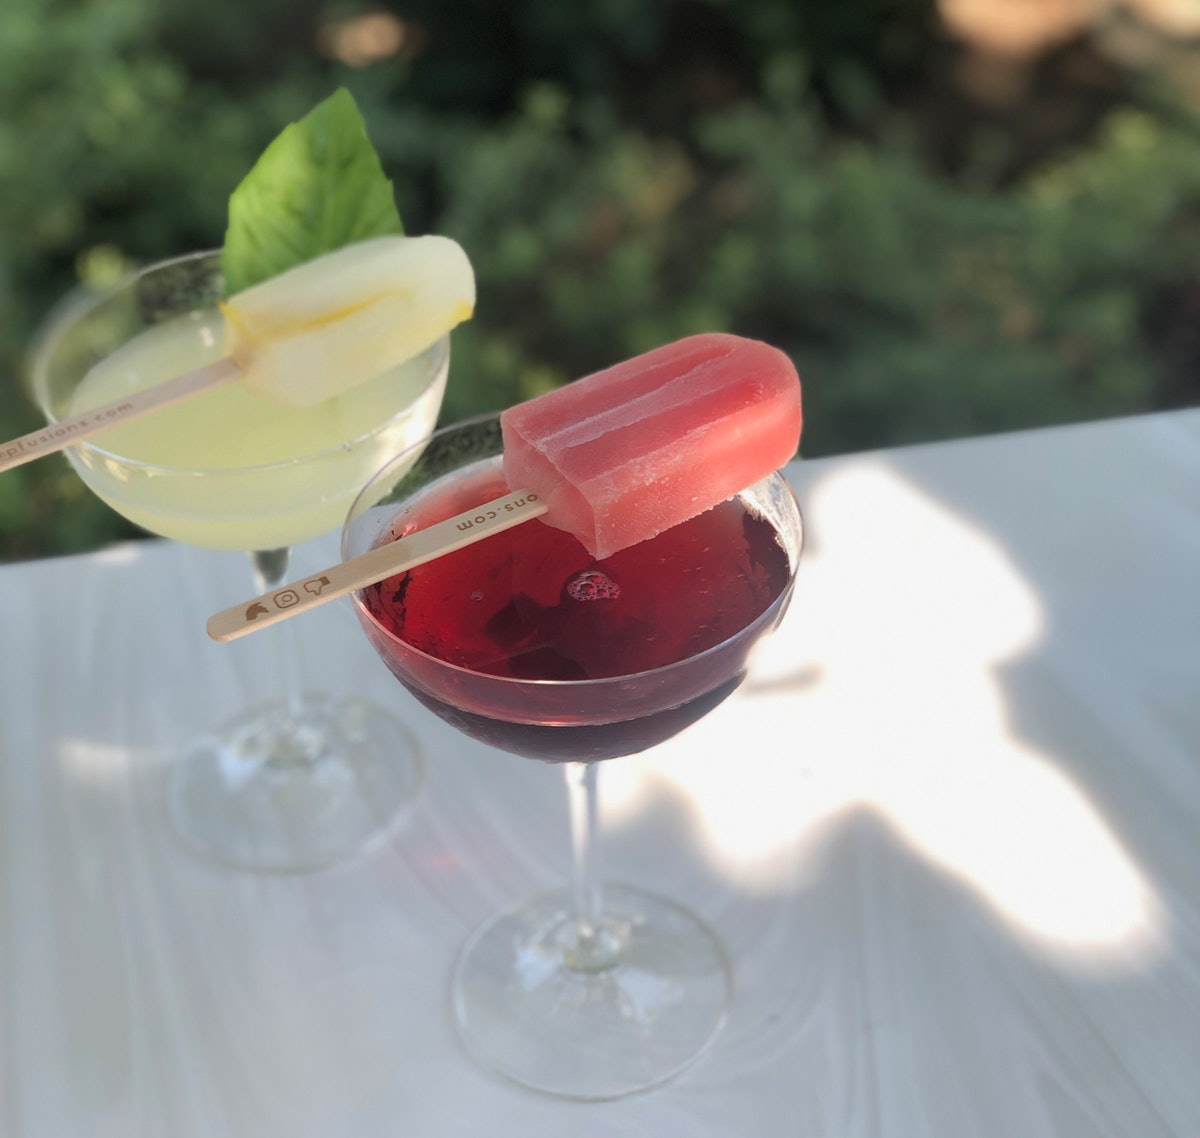 These limoncello and sangria cocktails are Instagrammable Disney drinks that come with popsicles on top.